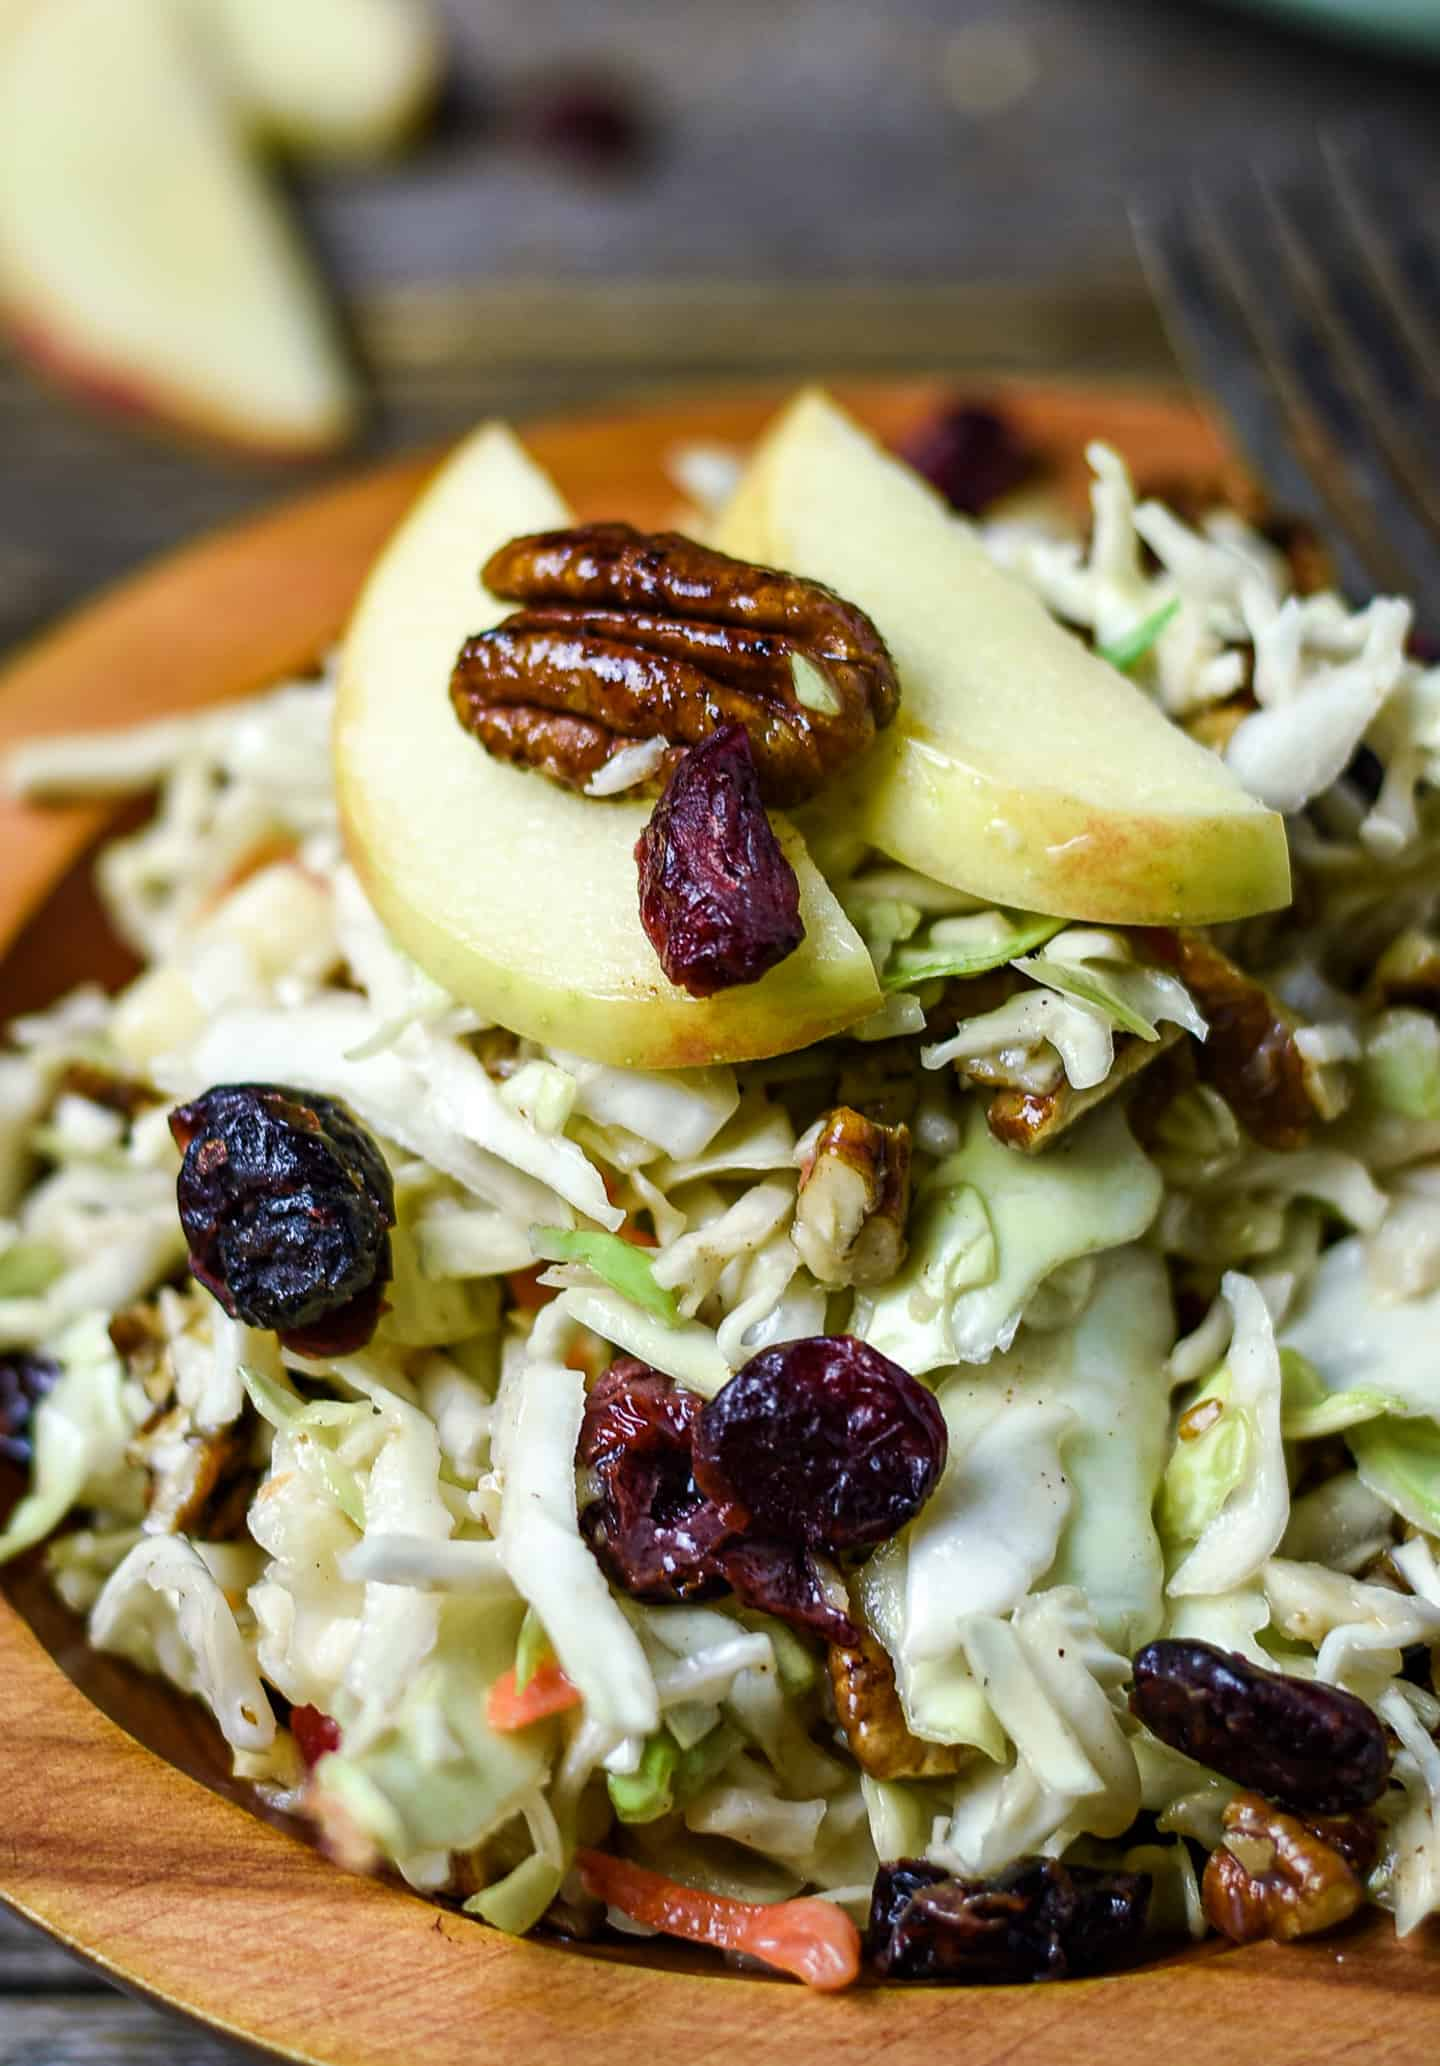 Pecans, apples, and cranberries on top of coleslaw.